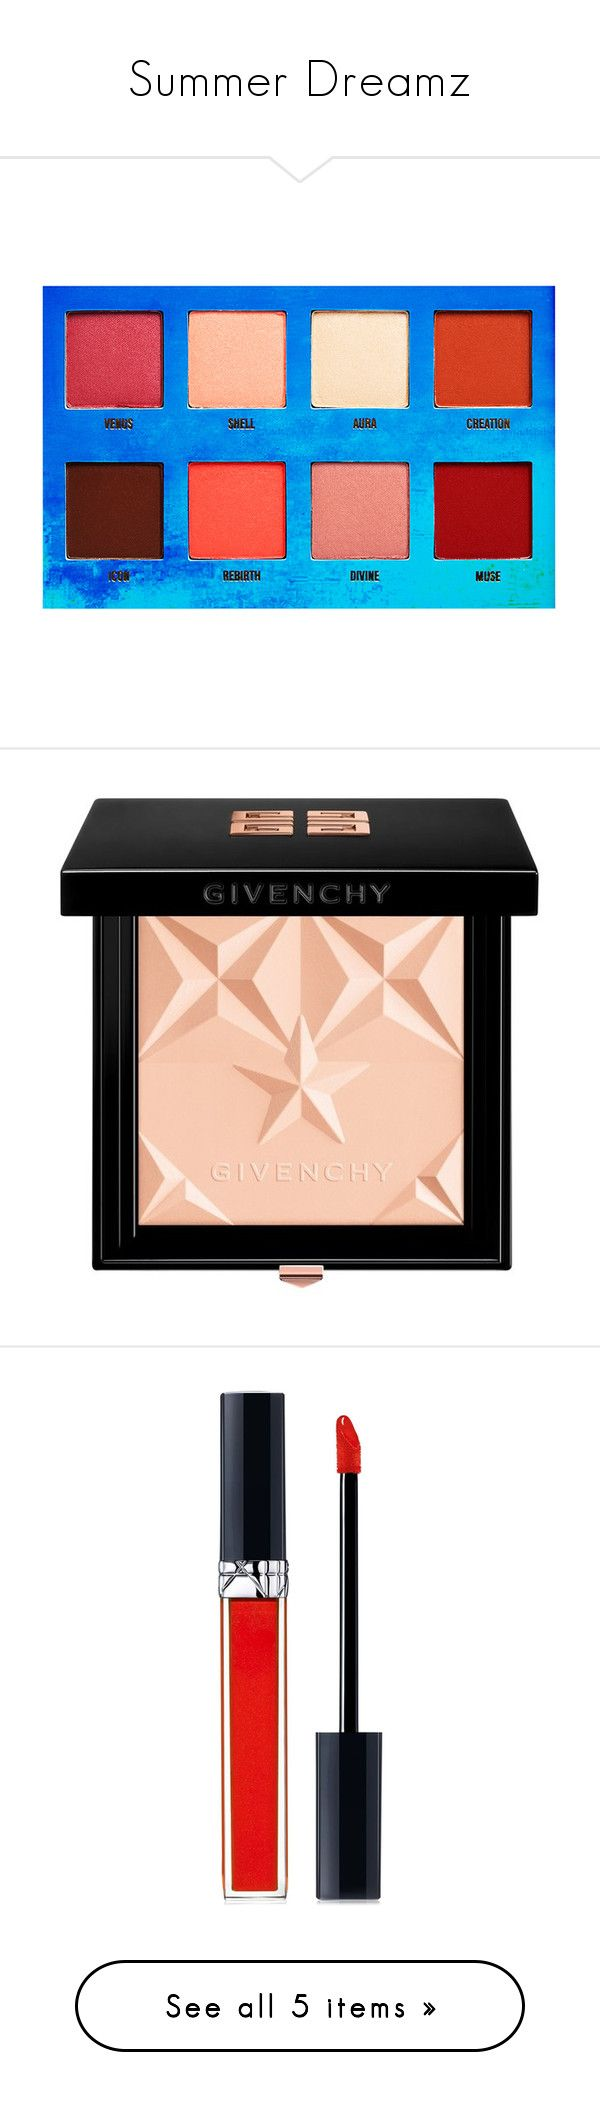 Summer Dreamz by chloteldagracella on Polyvore featuring polyvore, beauty products, makeup, eye makeup, eyeshadow, beauty, eyes, lime crime, palette eyeshadow, face makeup, face powder, luminizers, red, givenchy, lip makeup, lipstick, lips, cosmetics, filler, red smile, christian dior lipstick, christian dior, shiny lipstick, gloss lipstick, lip gloss makeup, women's fashion, shoes, pumps, heels, louboutin, sapatos, black, black pointed toe pumps, pointed-toe pumps, black d orsay pumps, d…